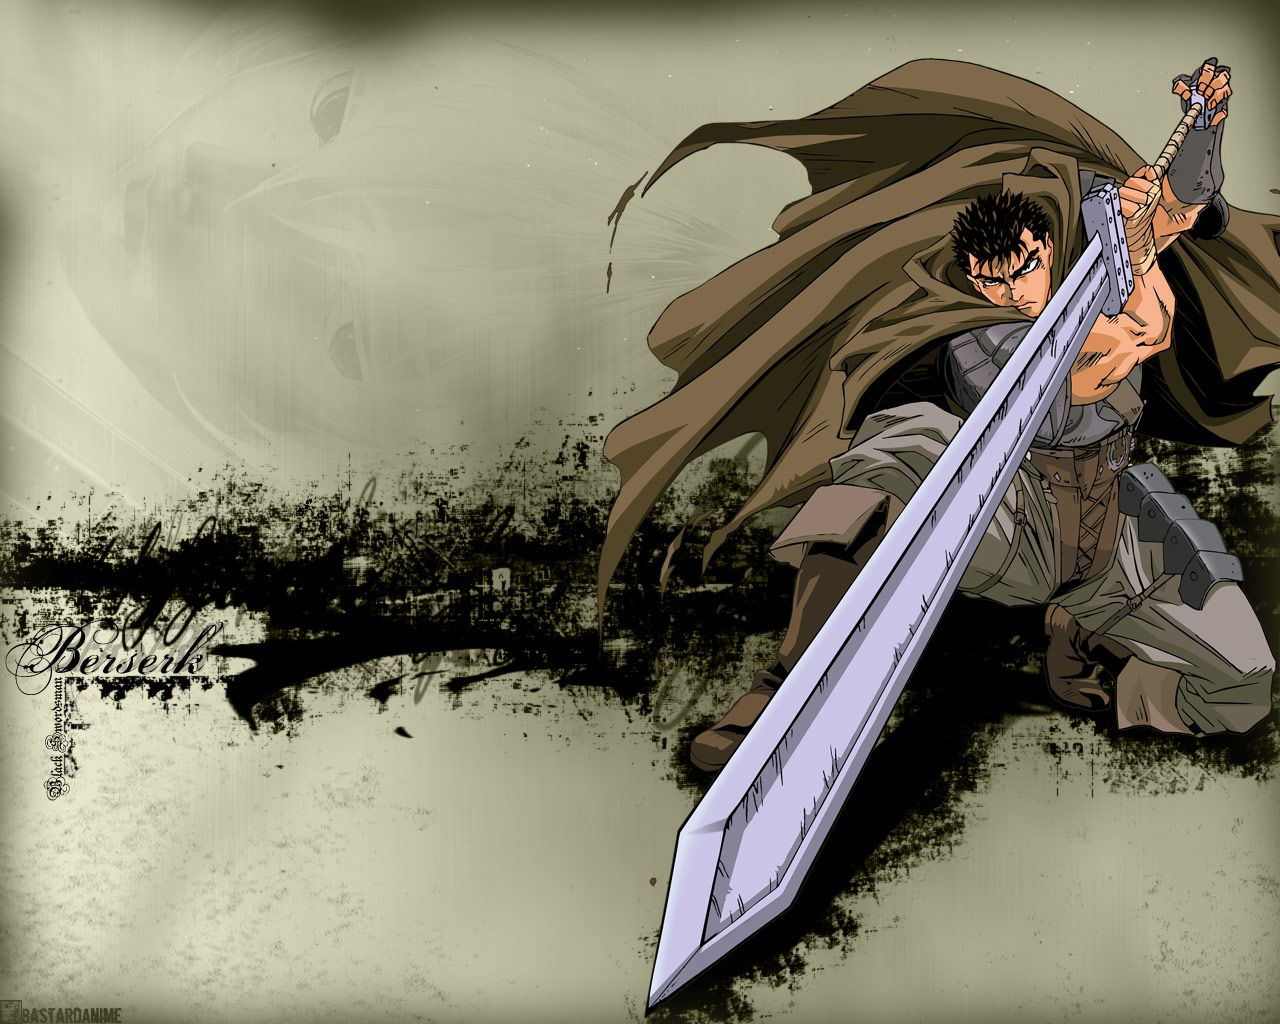 Berserk is such a great anime. Sad, but one of the best